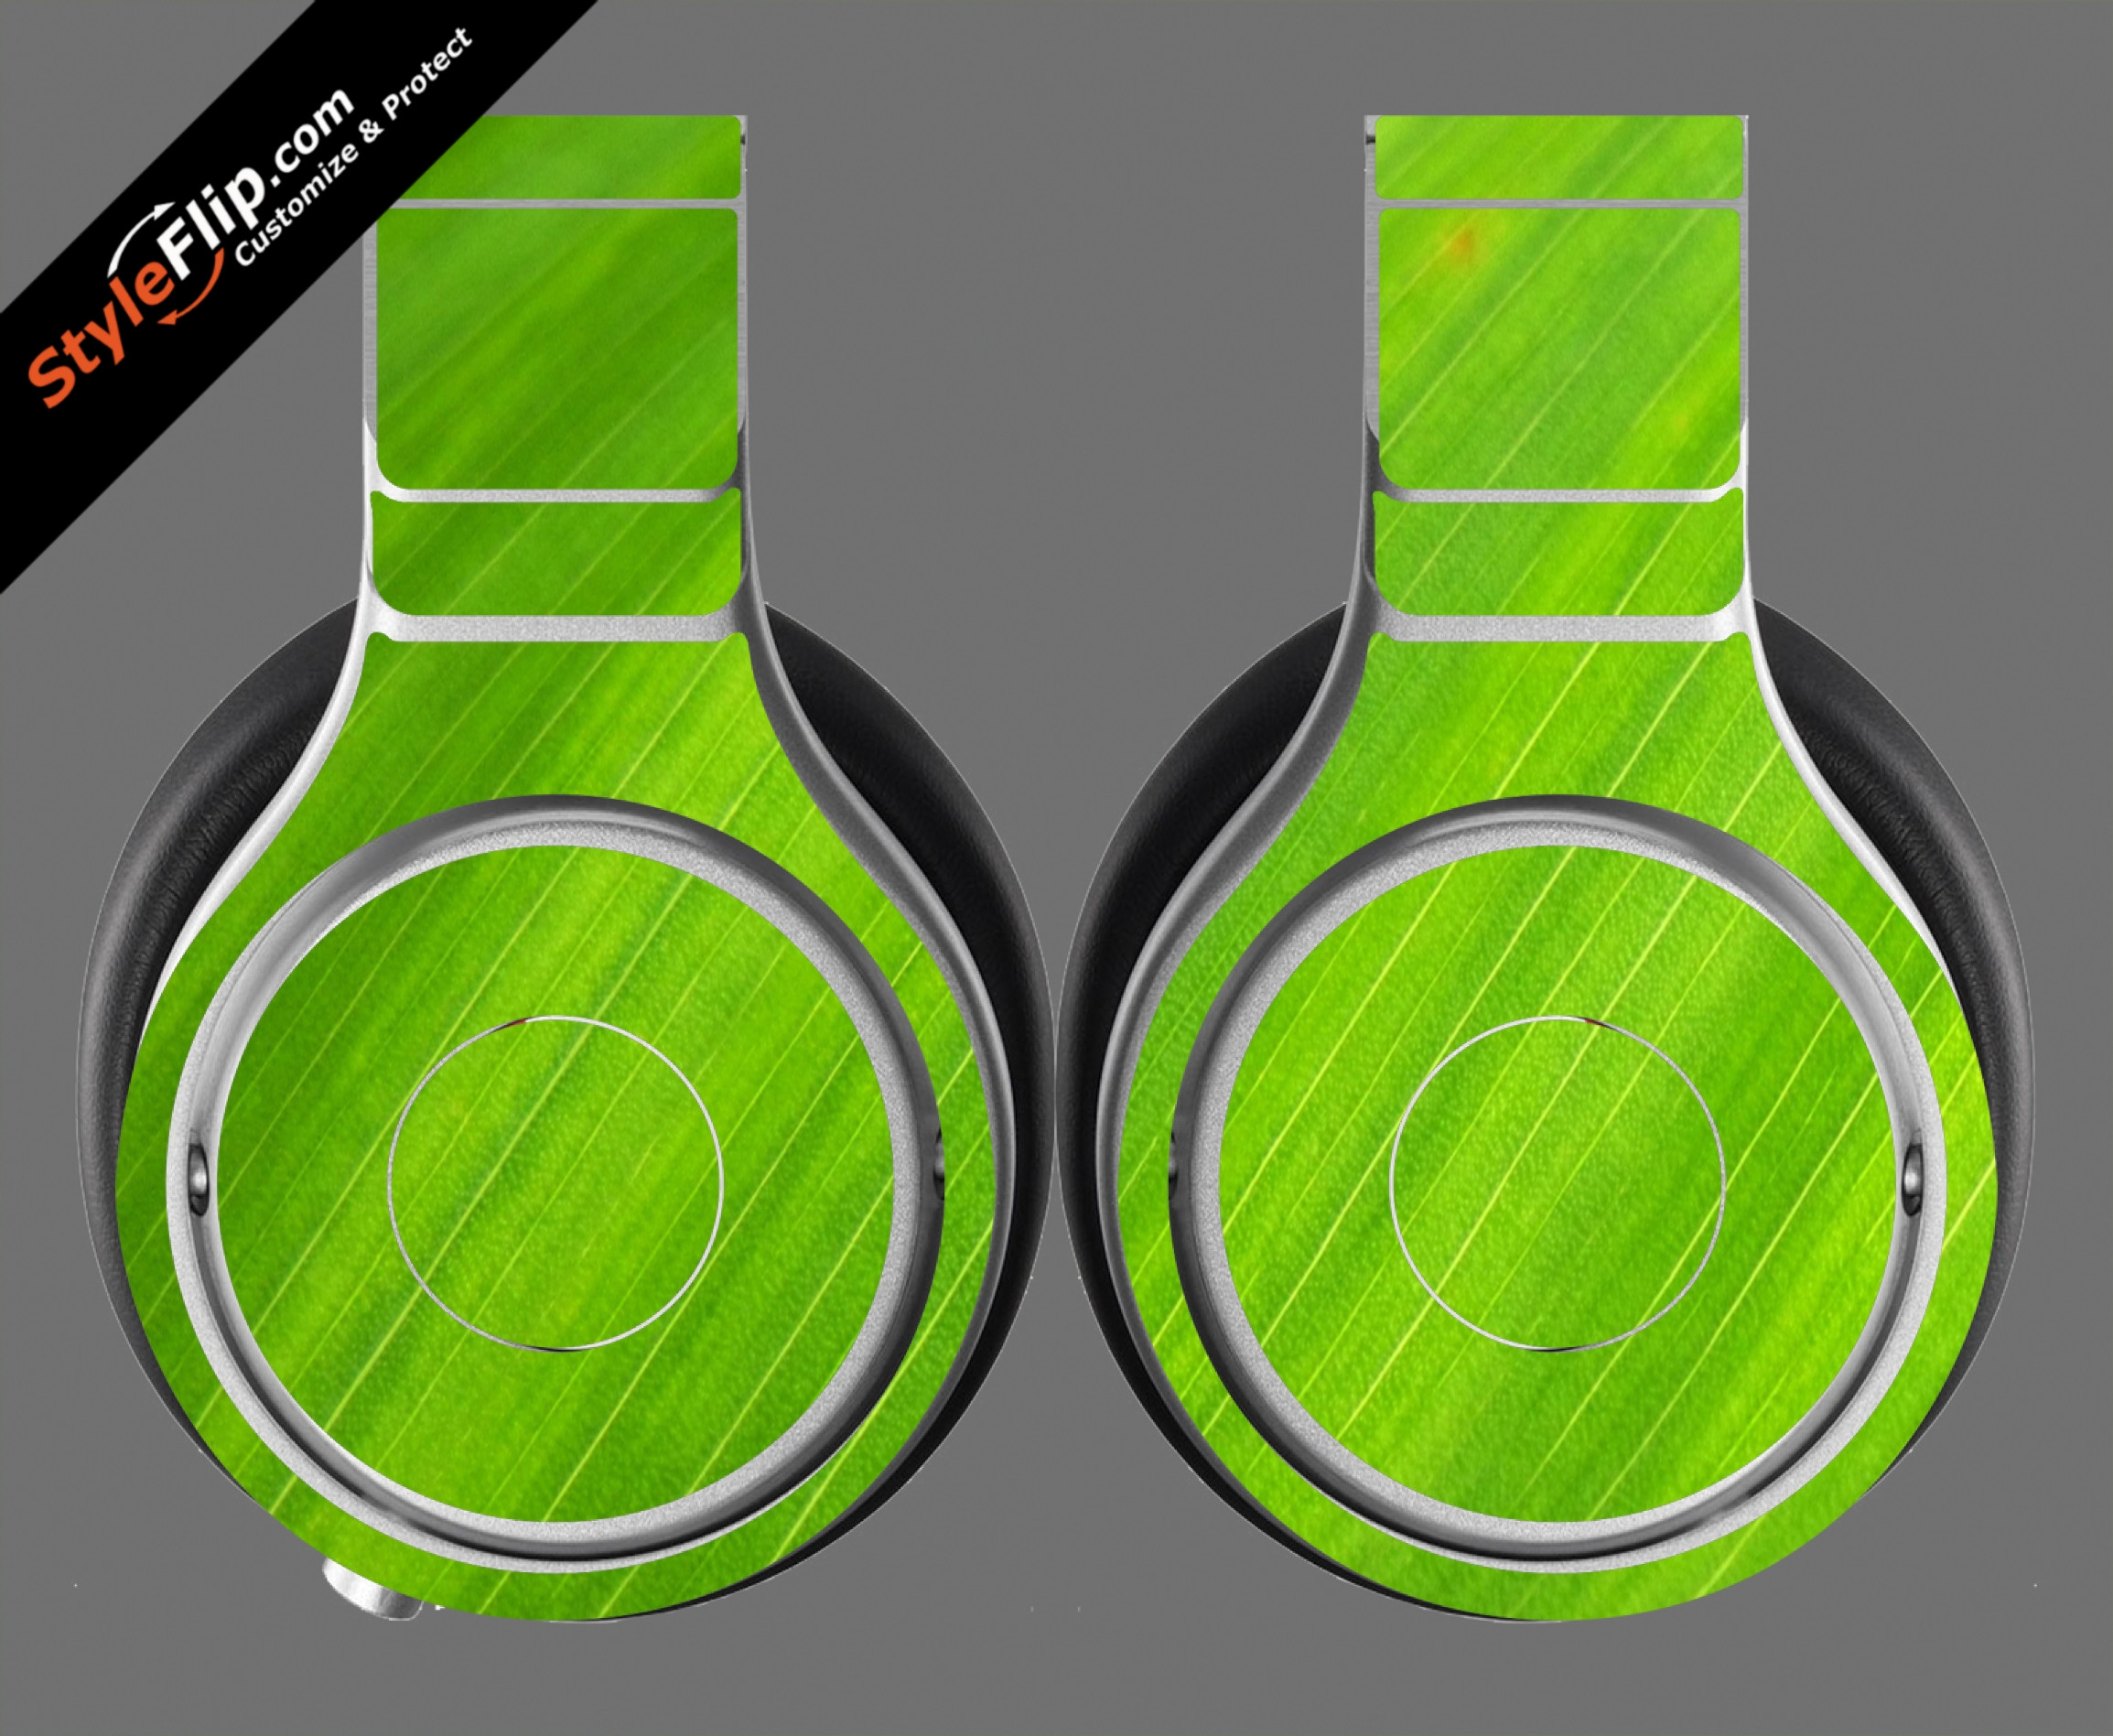 Leafy Beats By Dr. Dre Beats Pro Model